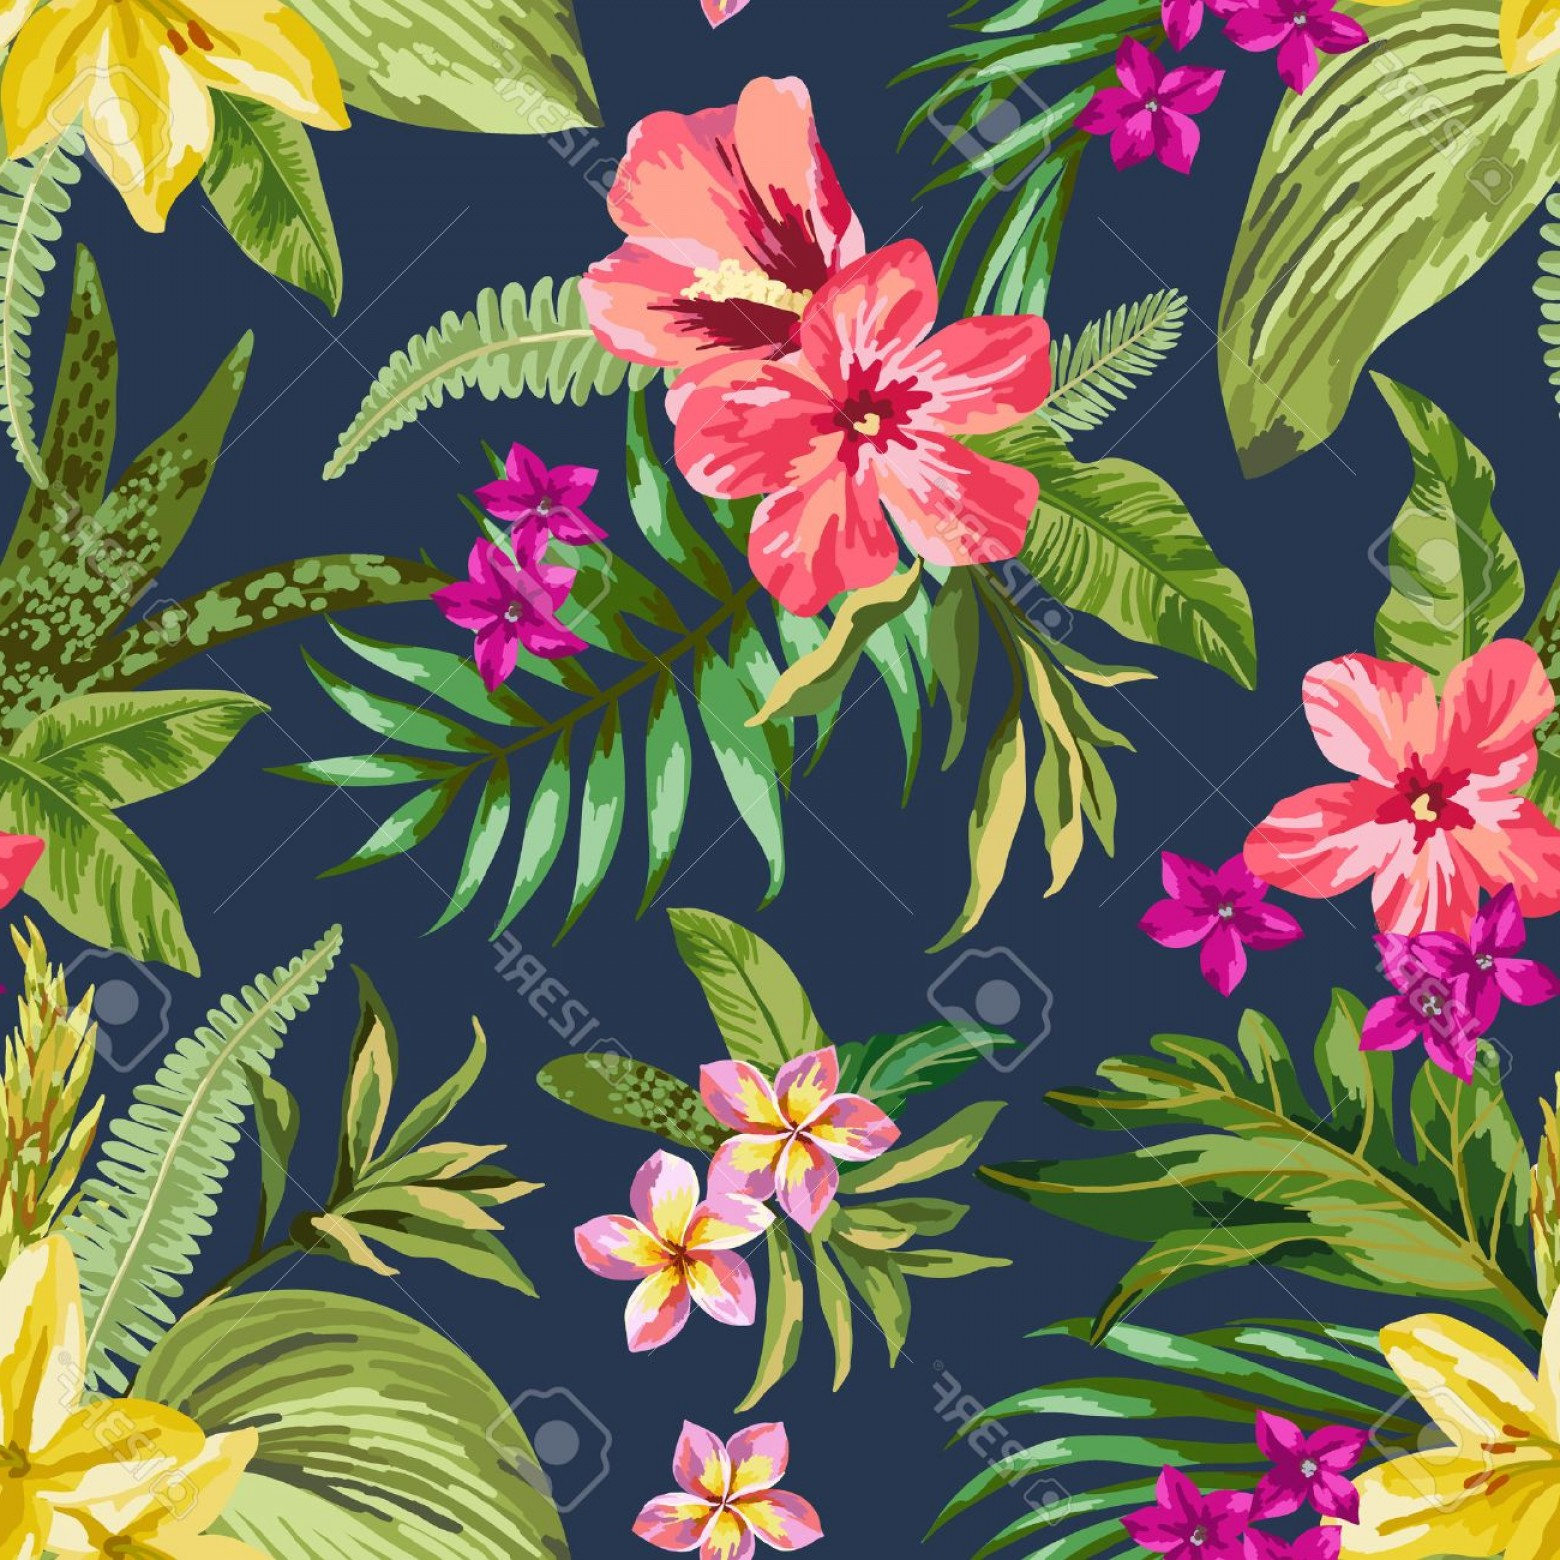 Hawaiian Flower Seamless Vector Pattern: Adorable Photostock Vector Seamless Exotic Pattern With Tropical Leaves And Flowers Blooming Jungle Vector Illustration